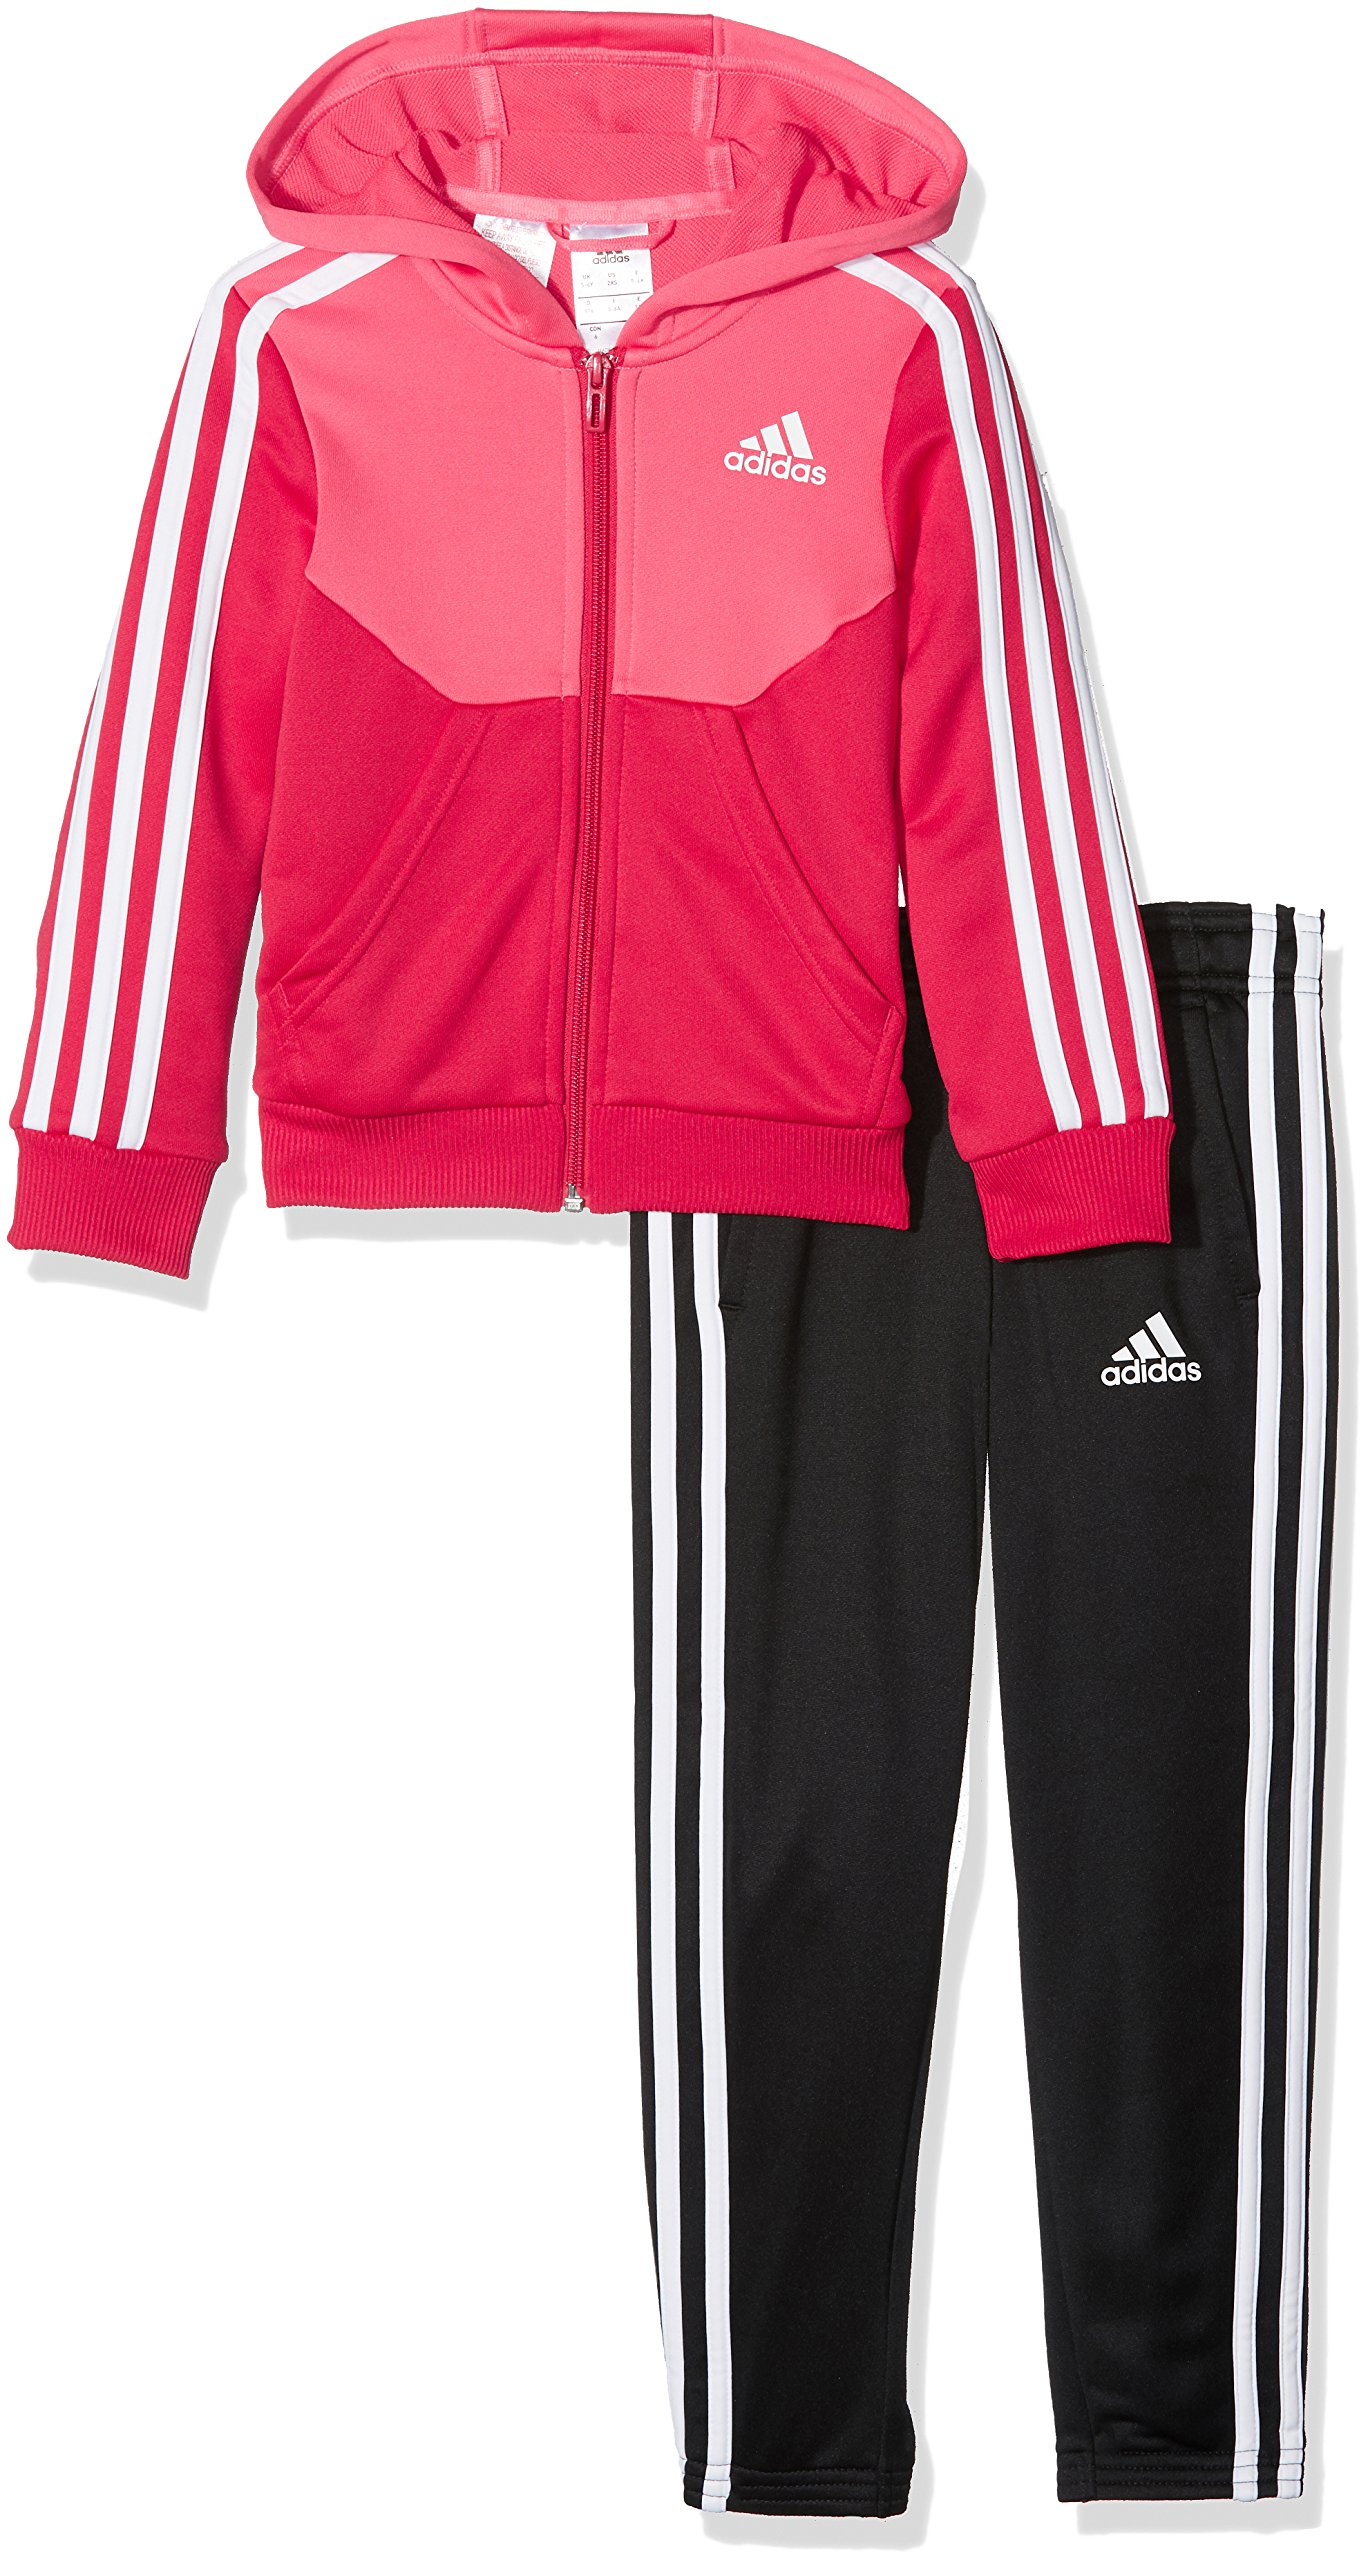 adidas Hooded Tracksuit - Girls - Super Pink - Age 11-12